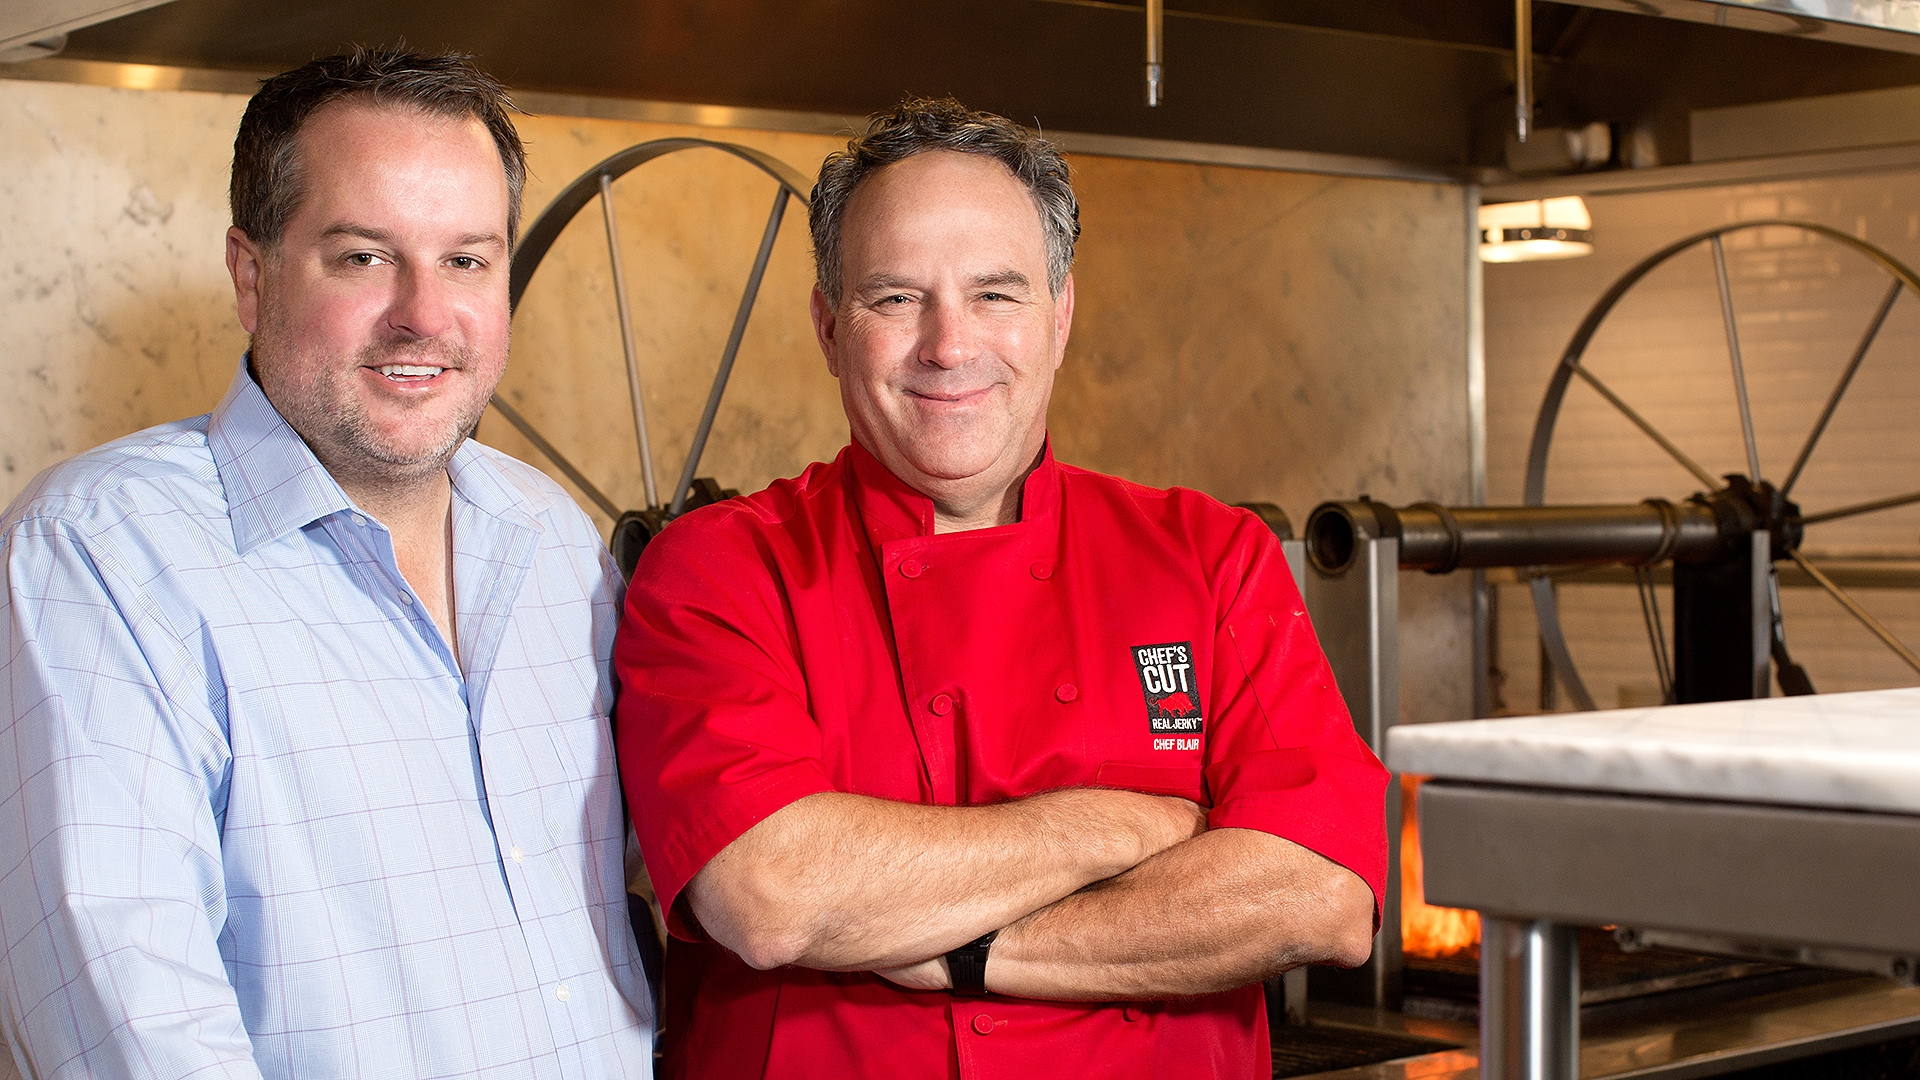 Dennis Riedel and Chef Blair Swiler, creators of Chef's Cut Real Jerky